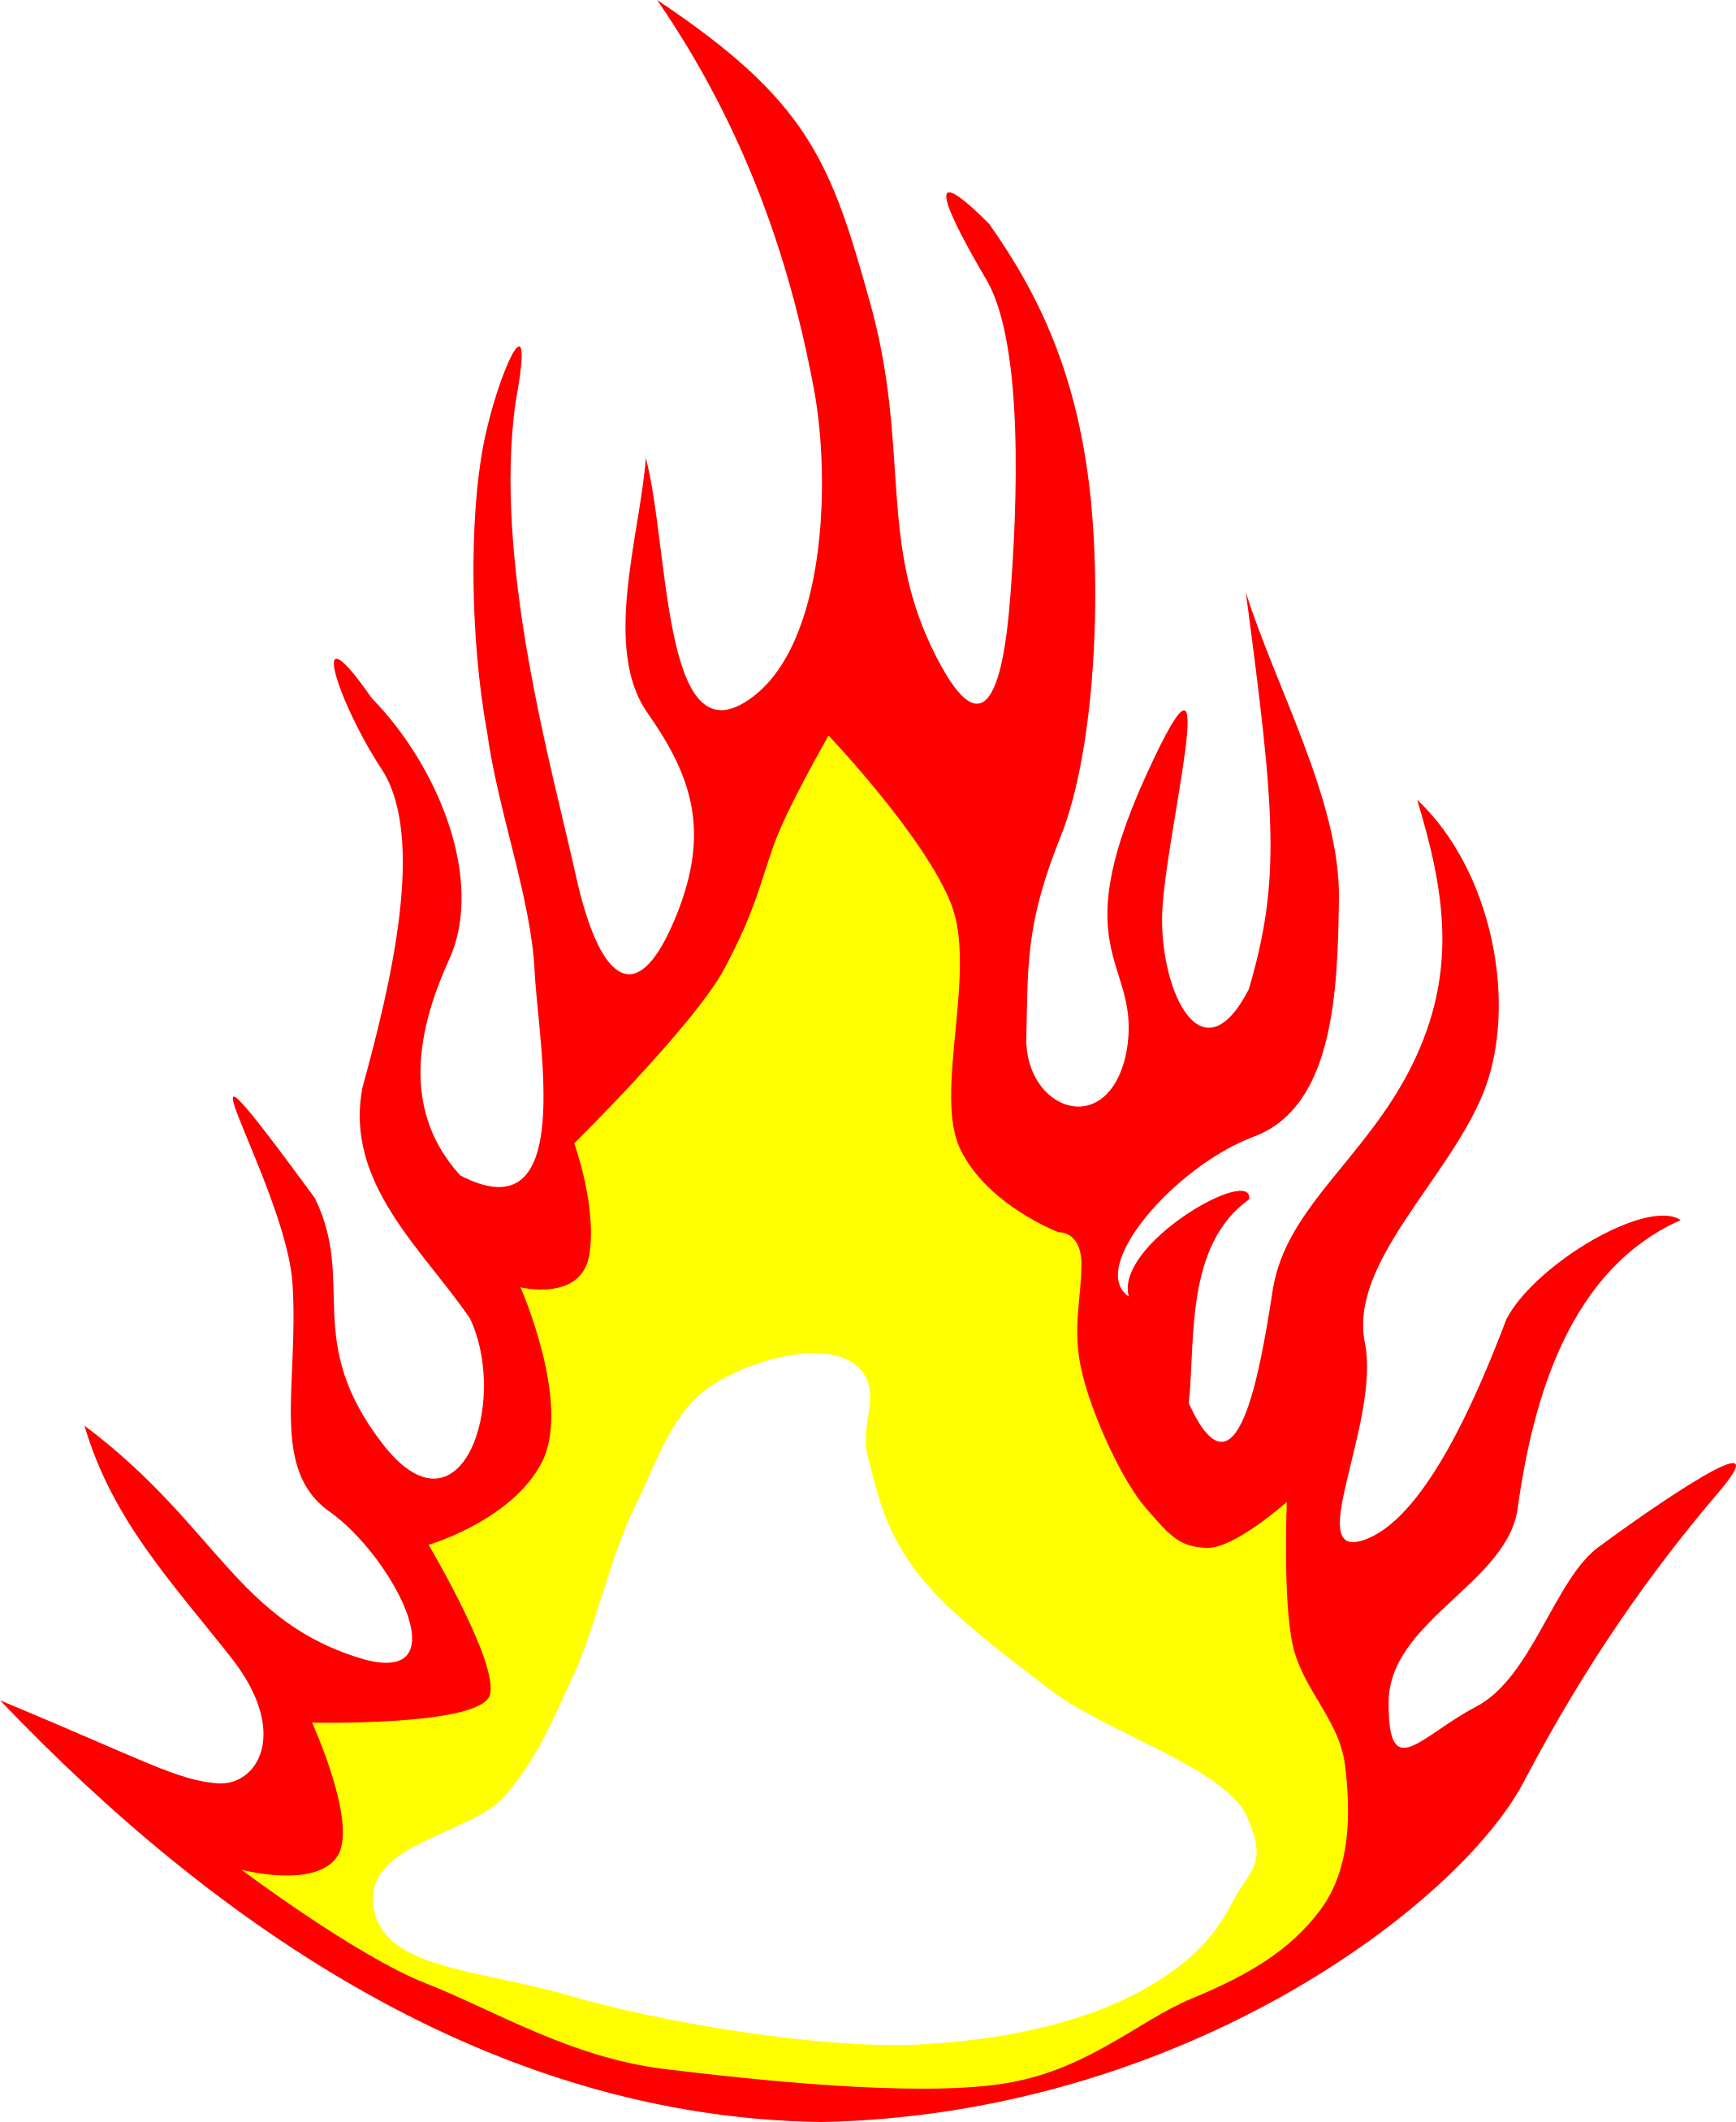 Flames clipart file.  fire flame png